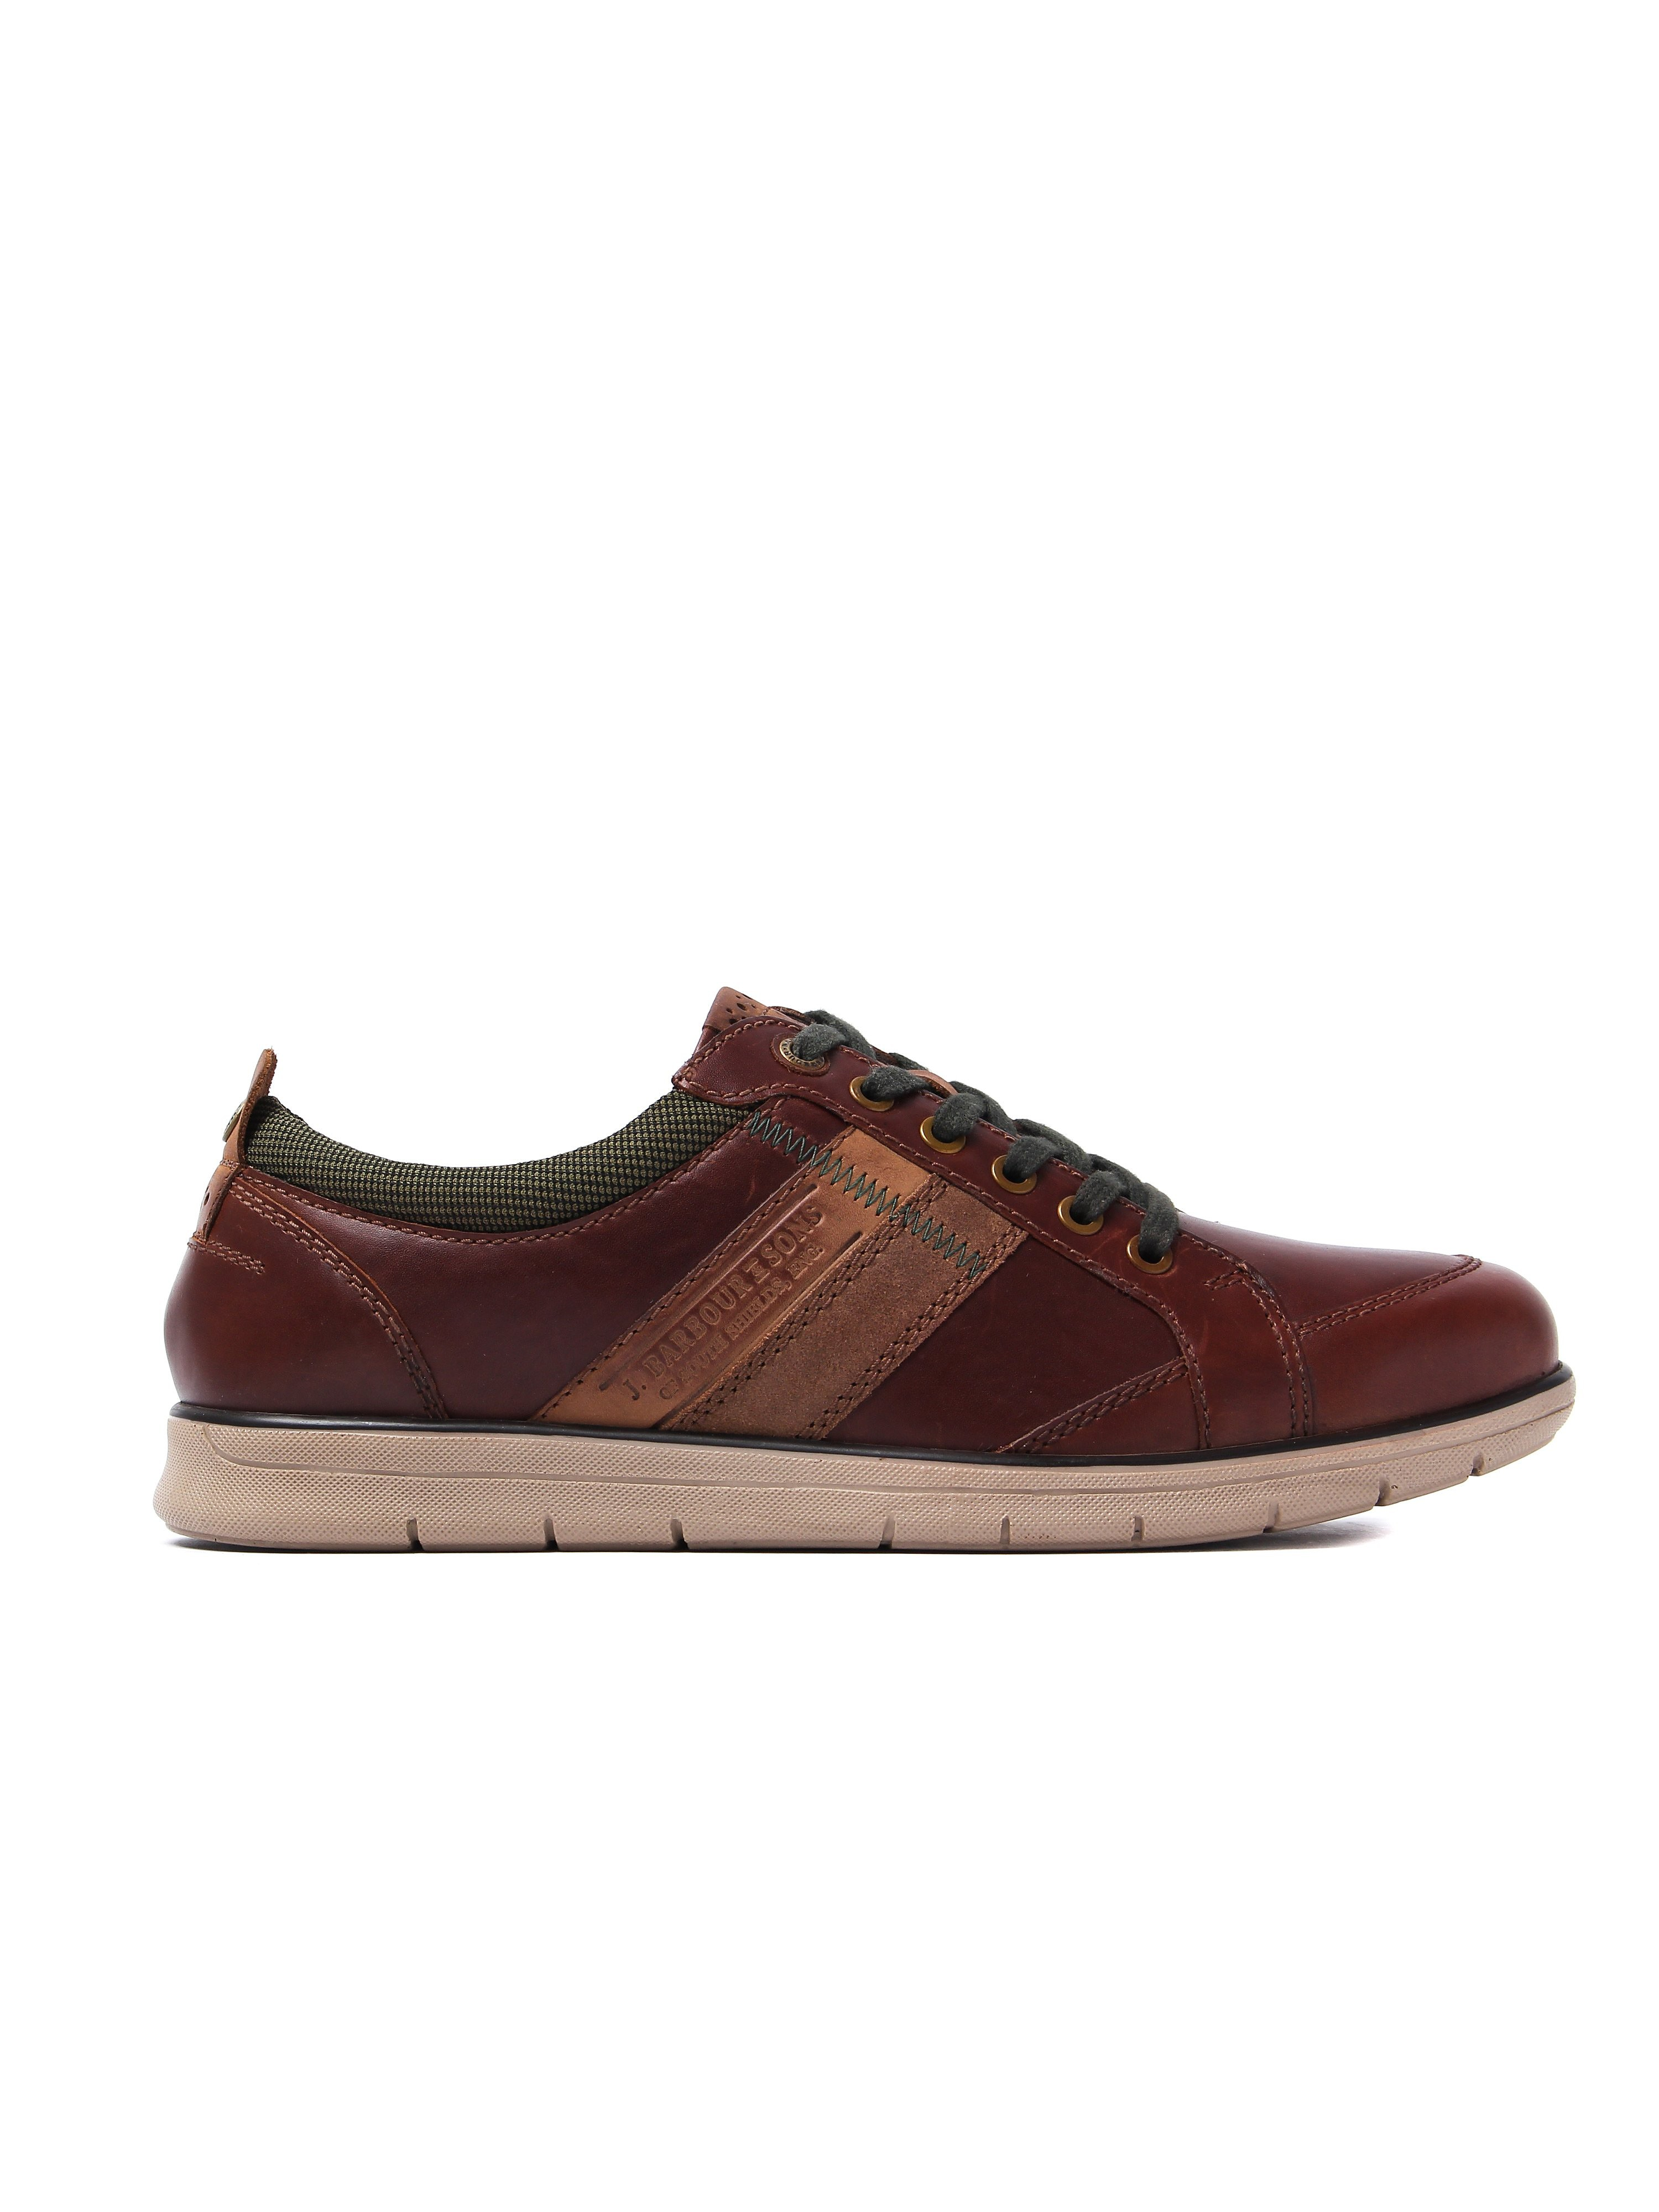 Barbour Men's Casual Shoes - Tan Leather